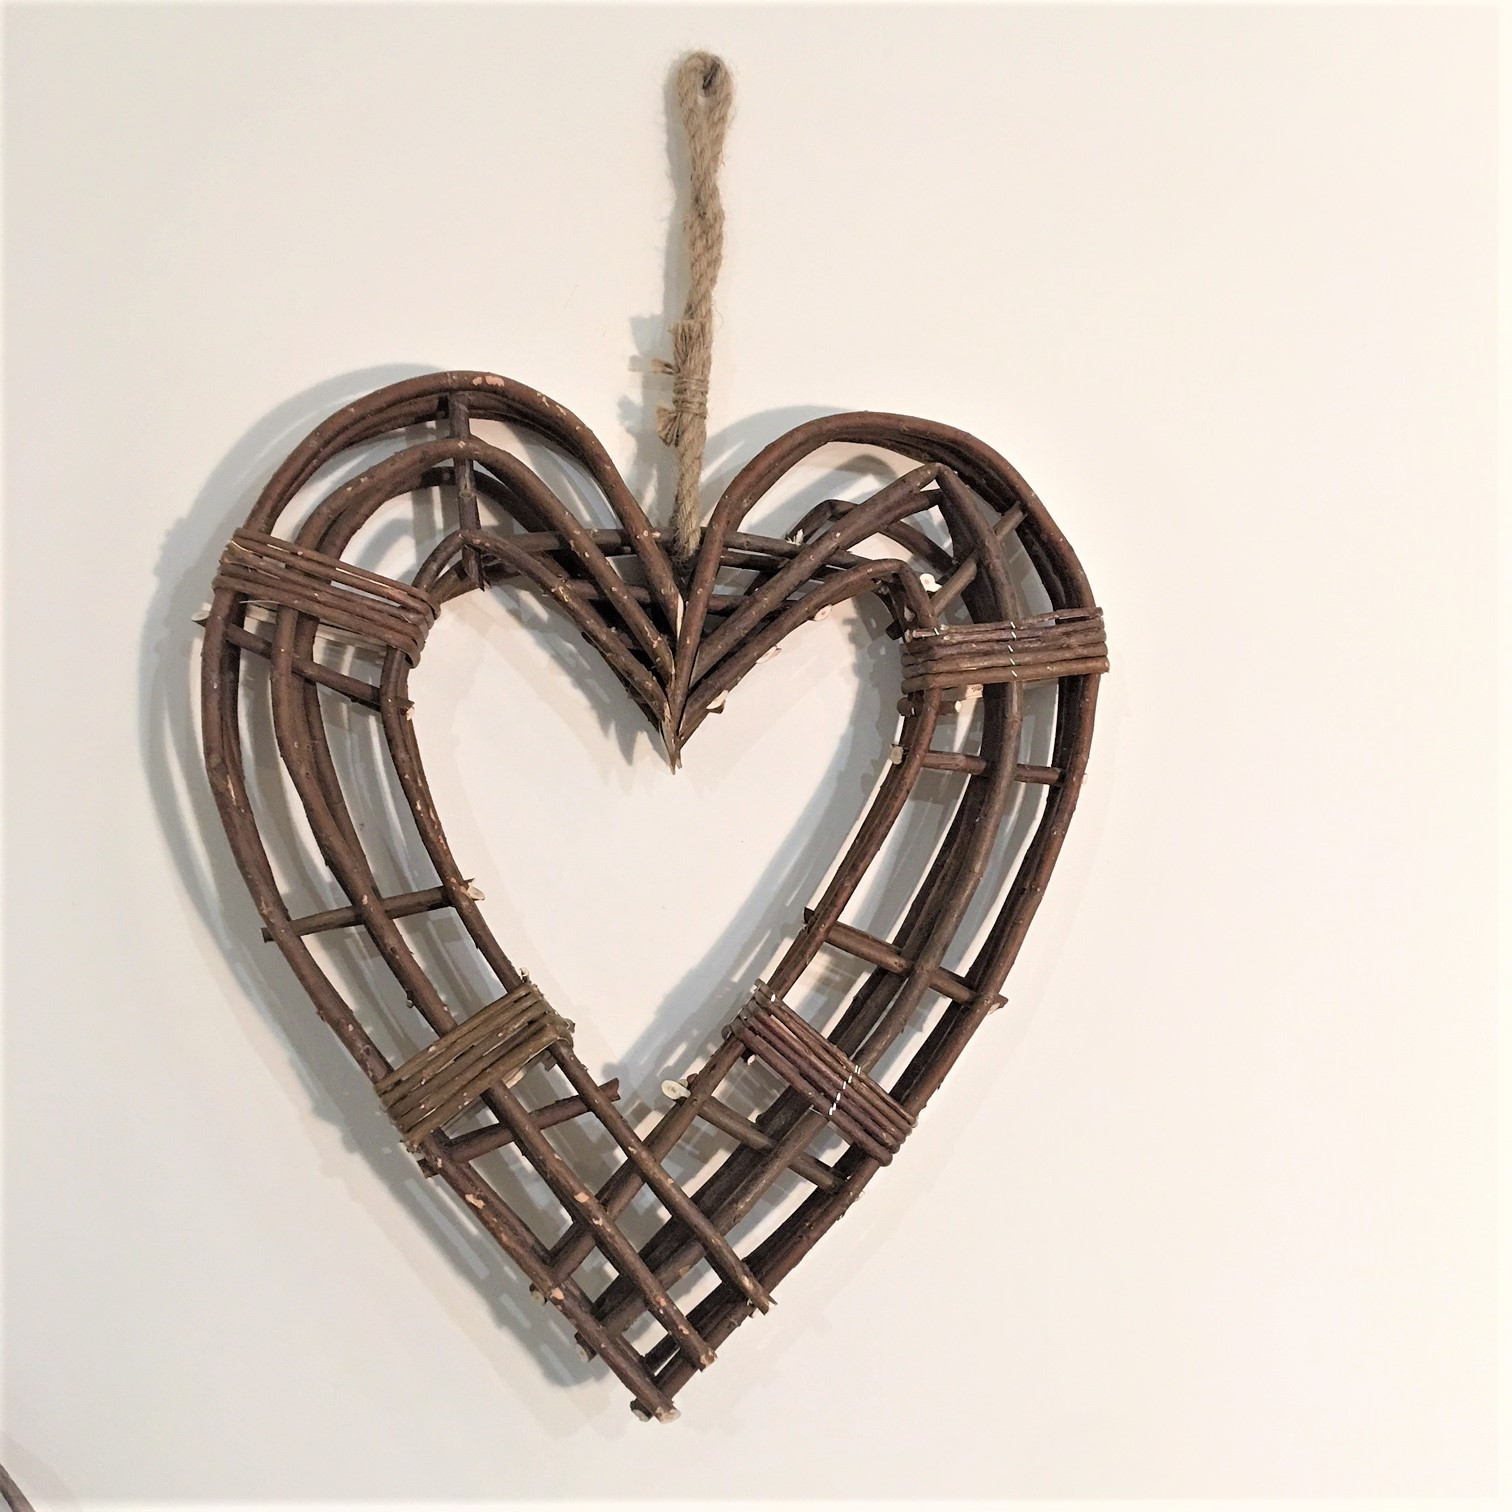 Large Natural Wicker Hanging Heart Wreath